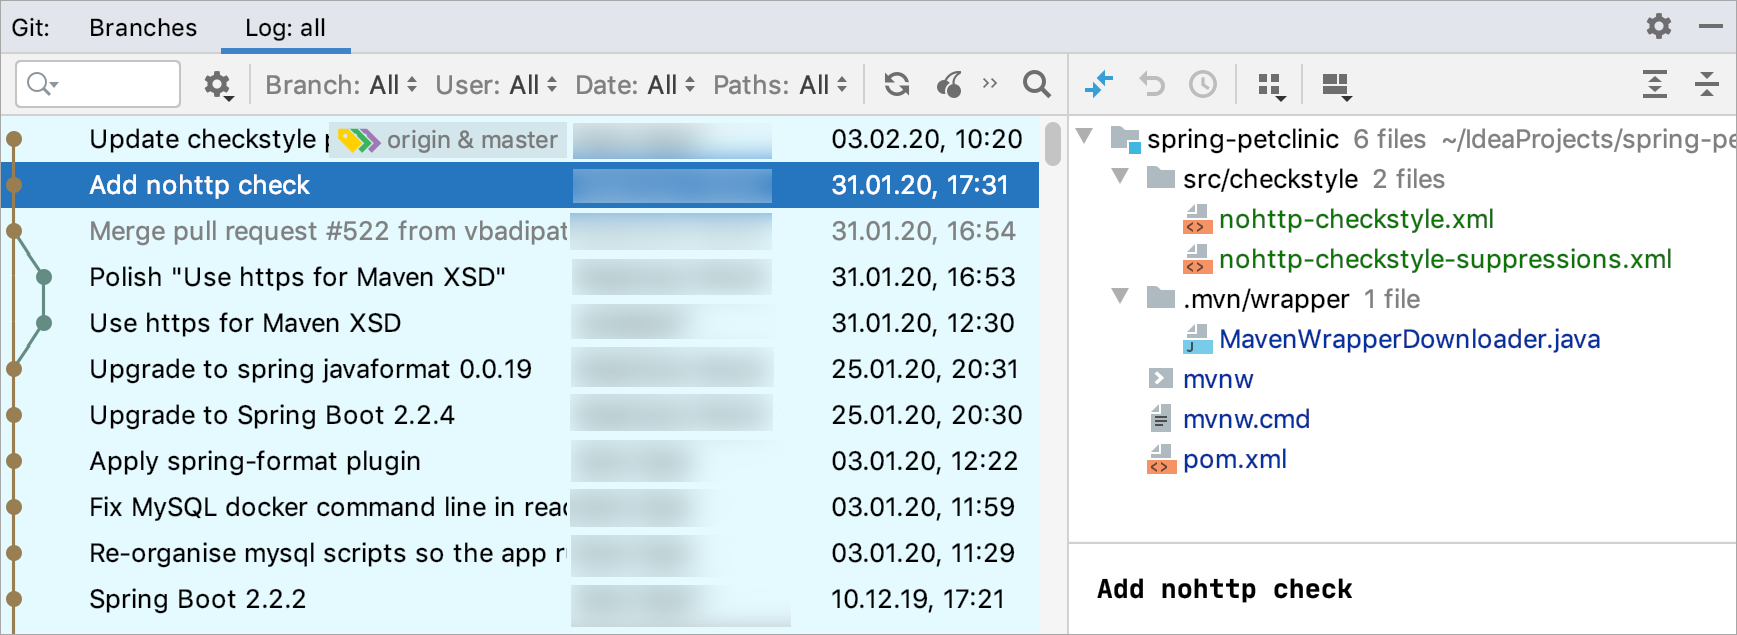 The Log tab of the Git tool window